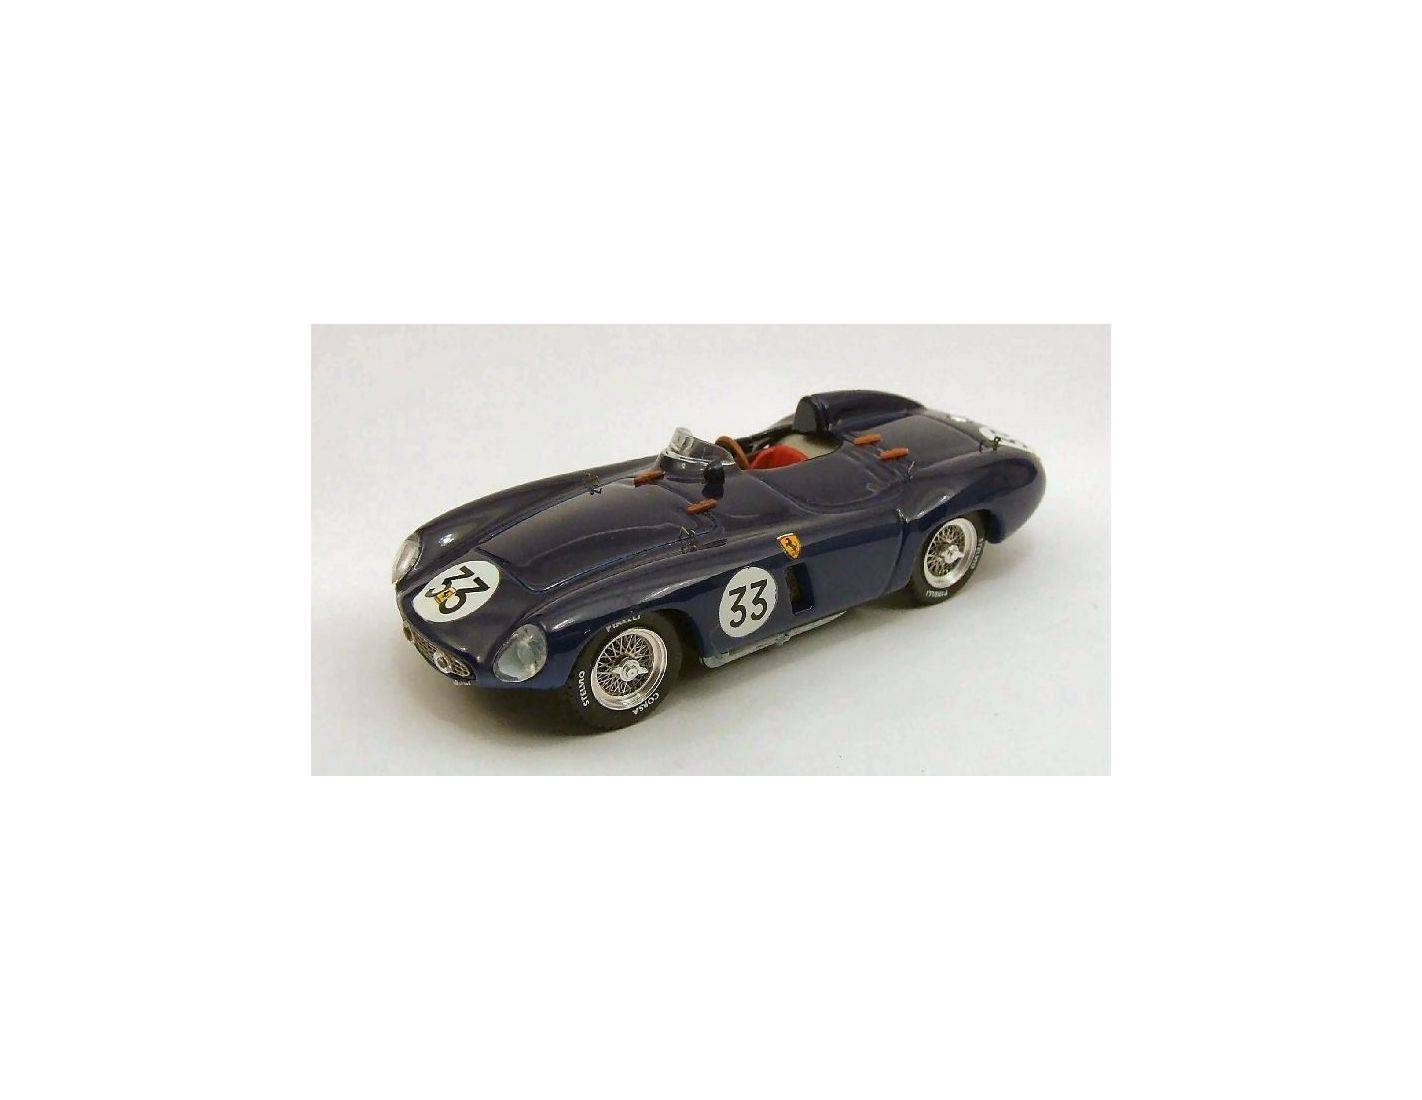 Art Model AM0222 FERRARI 500 MONDIAL N.33 8th S.BARBARA 1954 P.RUBIROSA 1:43 Modellino